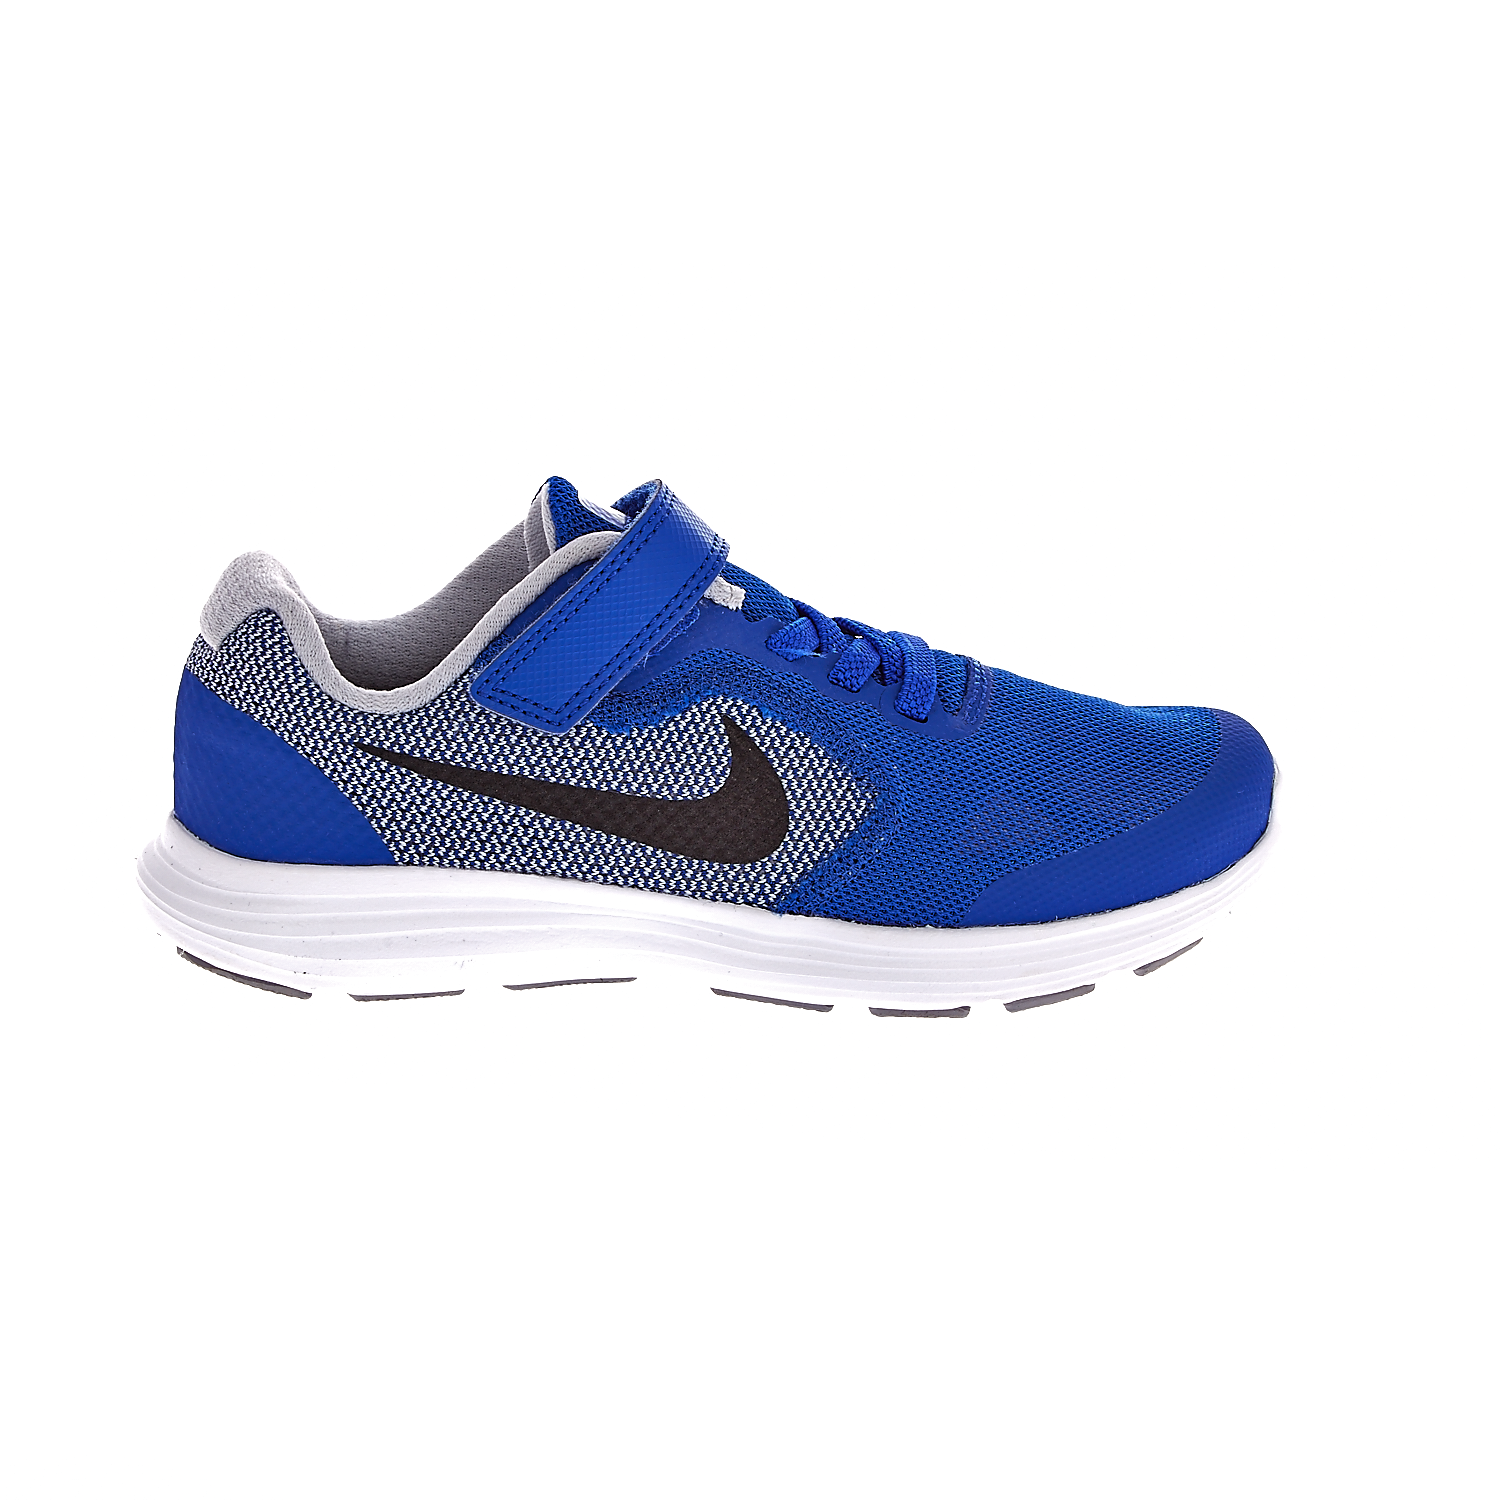 6fa1a46dcb9 -24% Factory Outlet NIKE – Παιδικά αθλητικά παπούτσια NIKE REVOLUTION 3  σκούρο μπλε